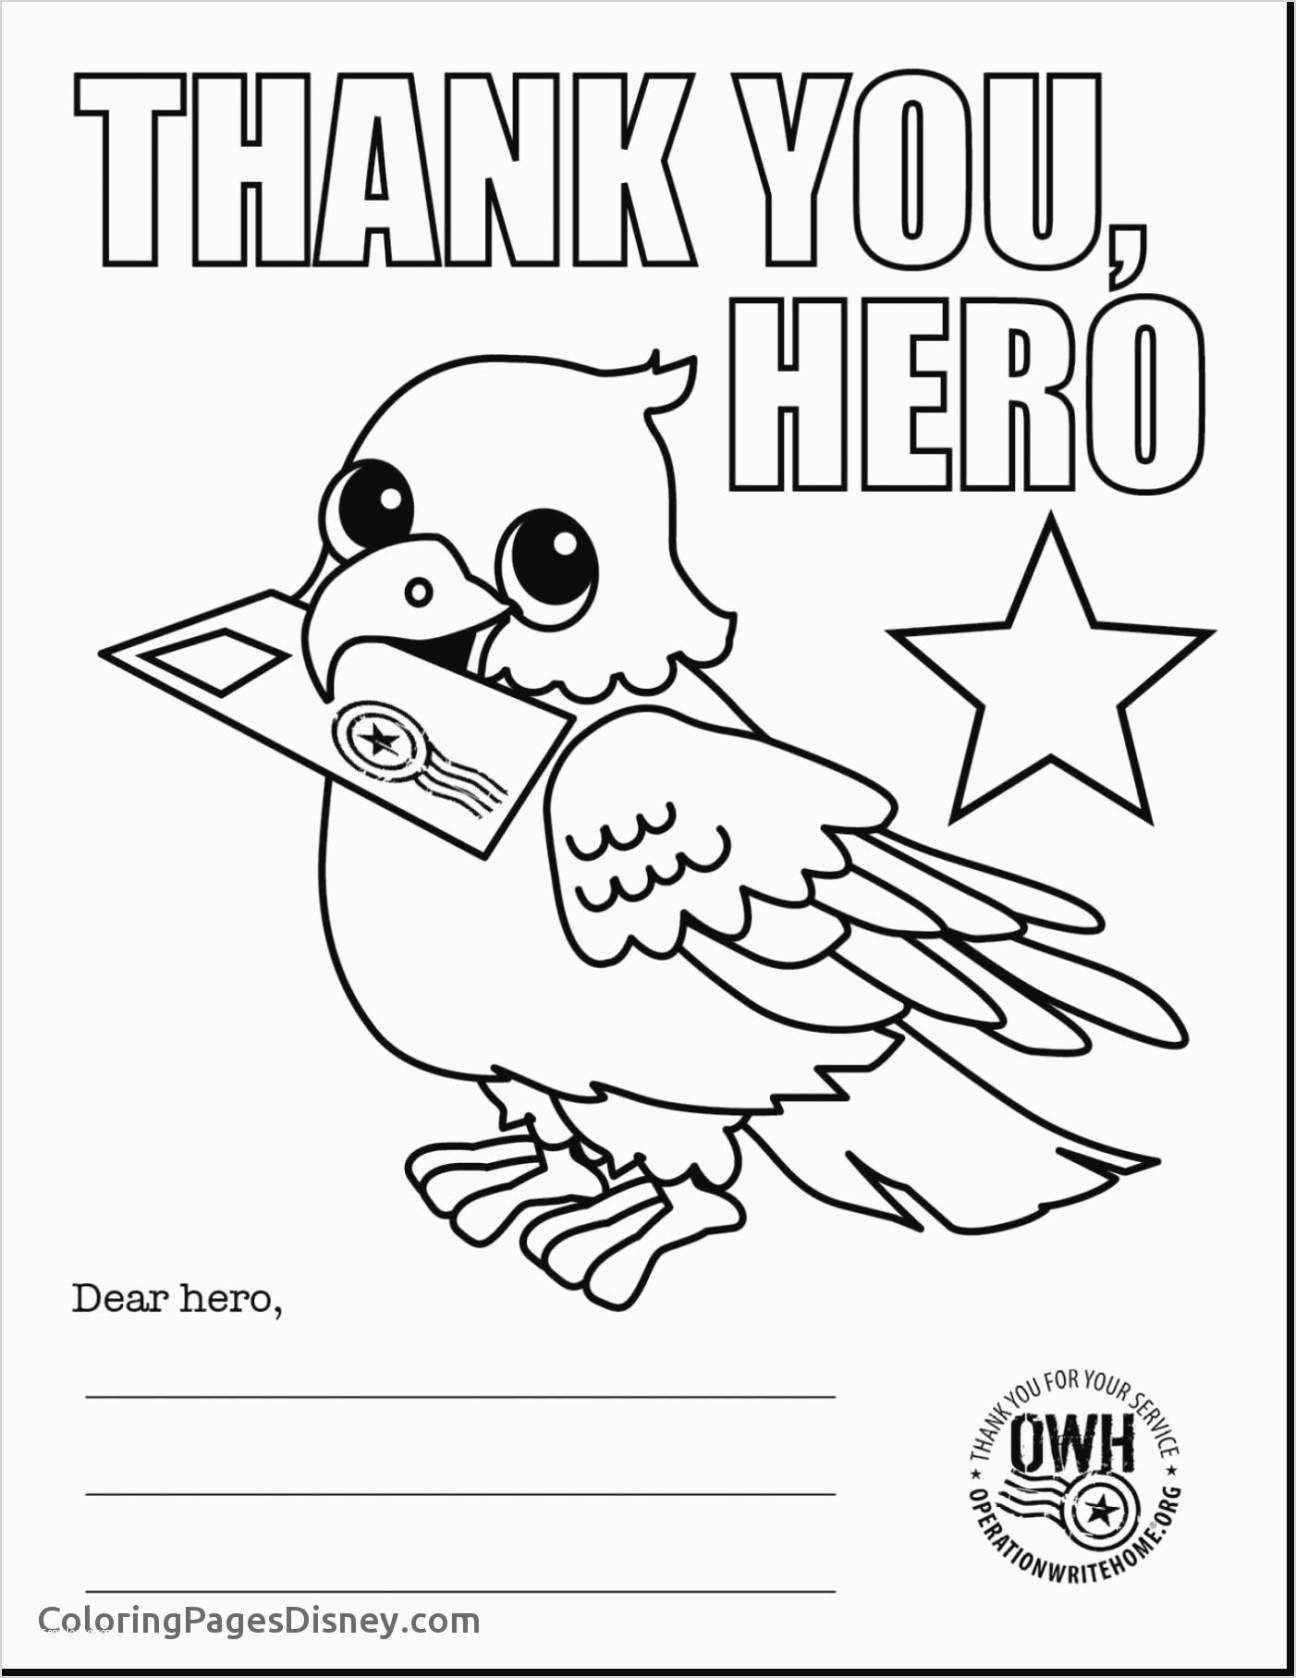 Thank You Coloring Pages Coloring Pages Cartoon Outlines For Colouring Elegant Disney Princess Coloring Pages Bird Coloring Pages Coloring Pages Inspirational